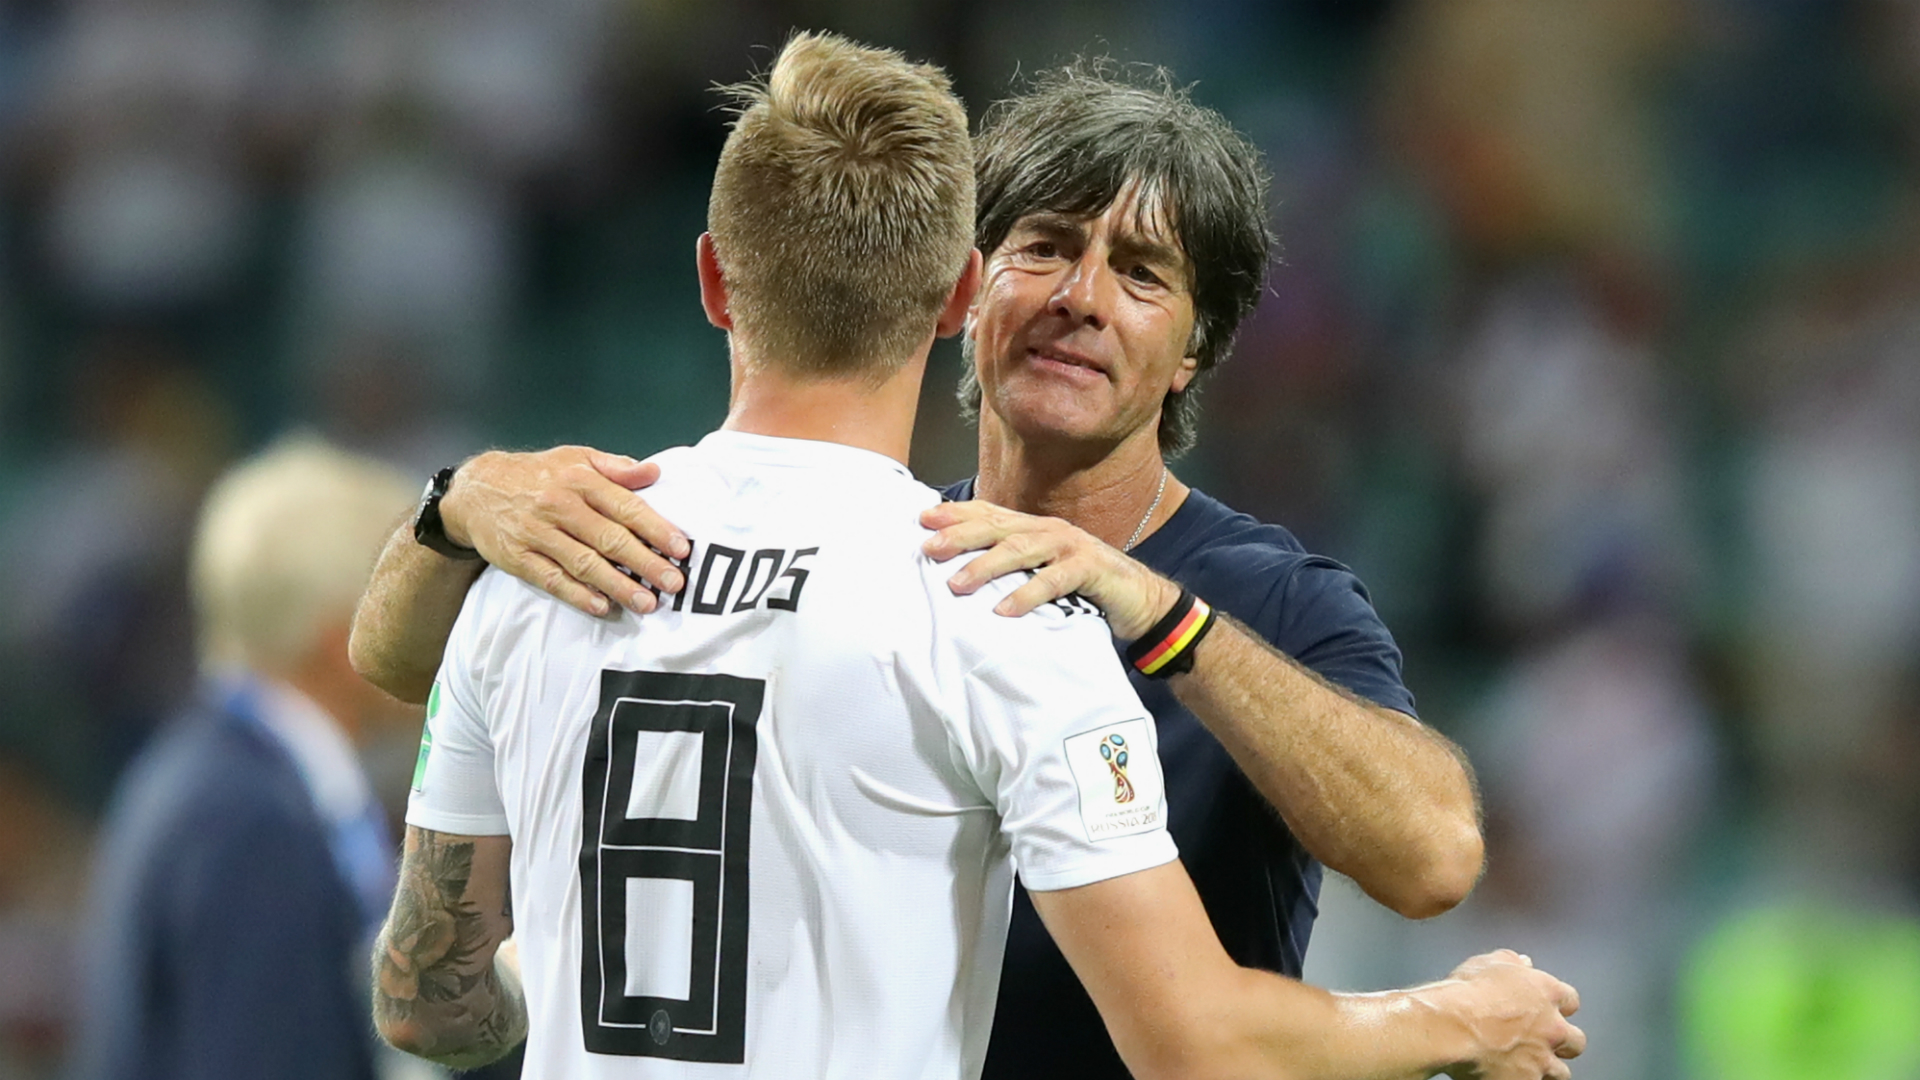 Maybe he wanted the job – Kroos defends Low after Ballack criticism